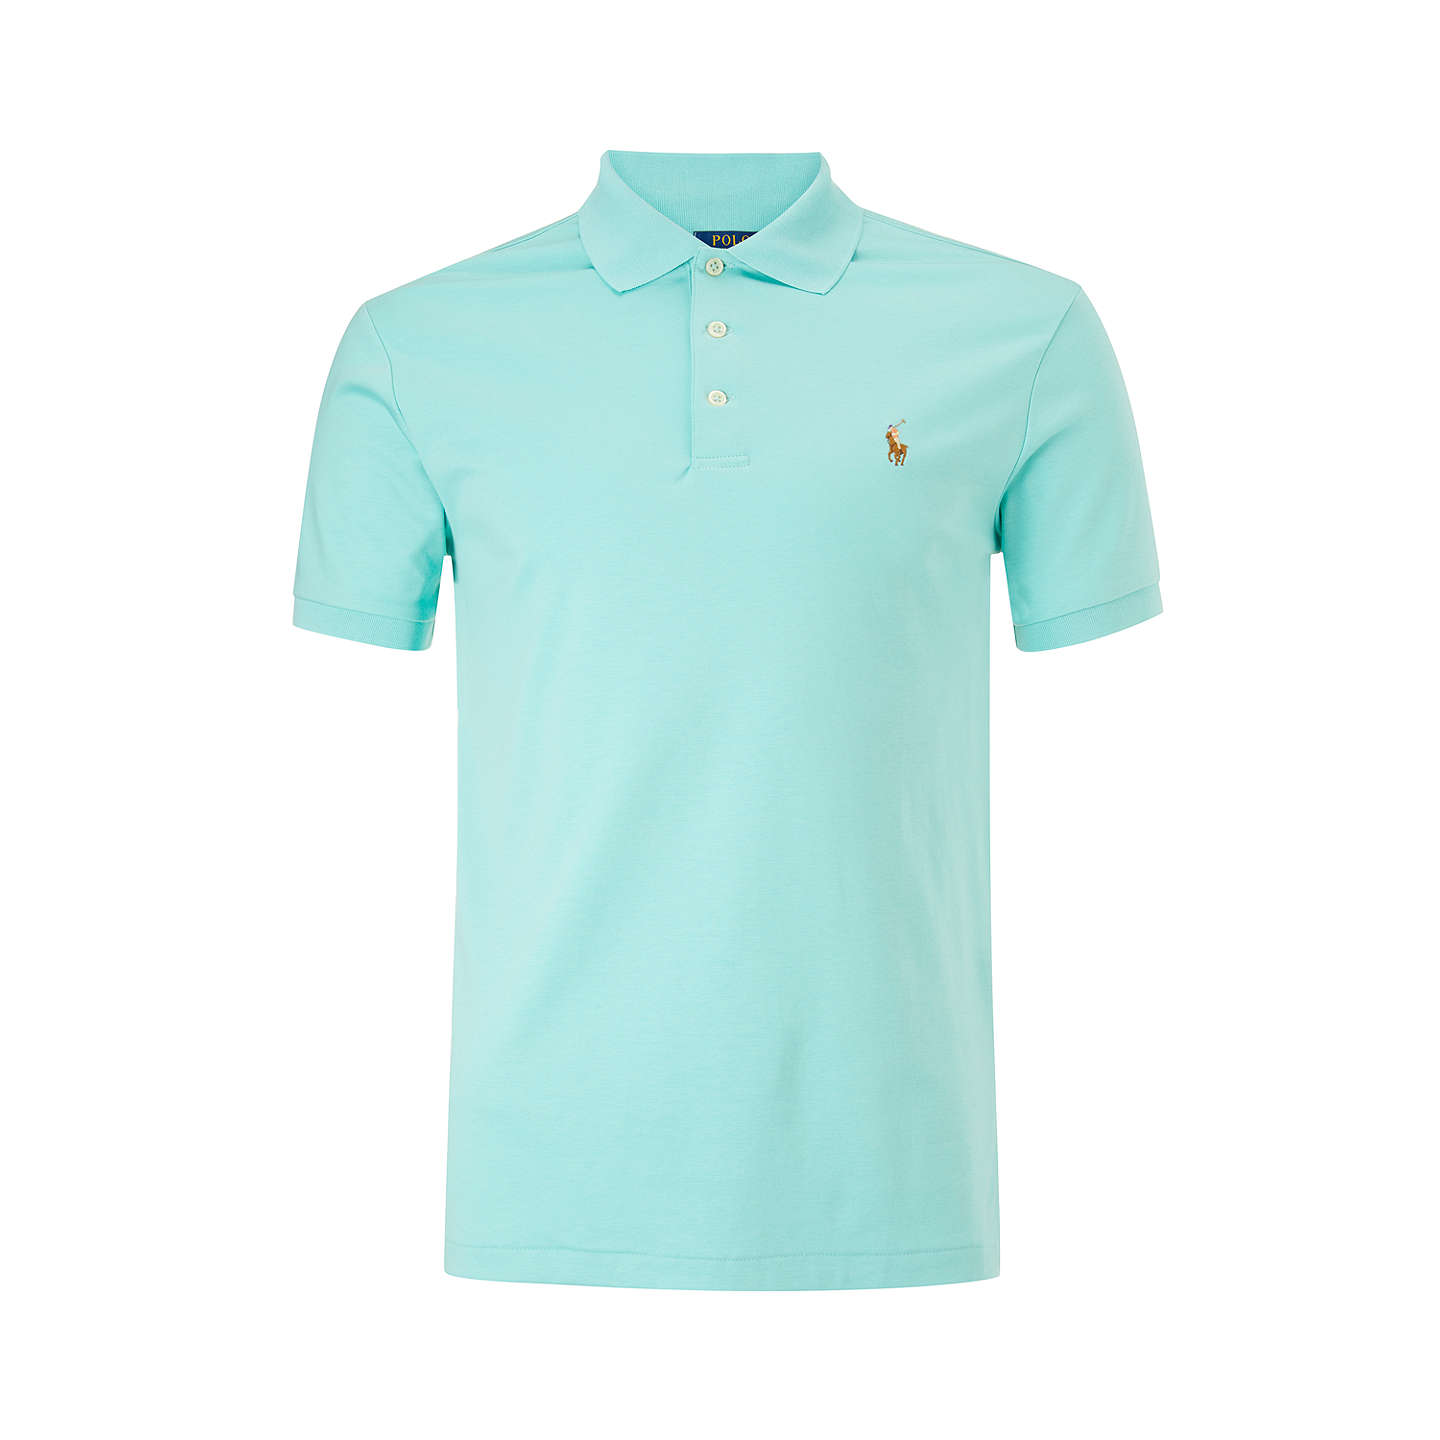 BuyPolo Ralph Lauren Slim Fit Polo Shirt, Bayside Green, S Online at  johnlewis.